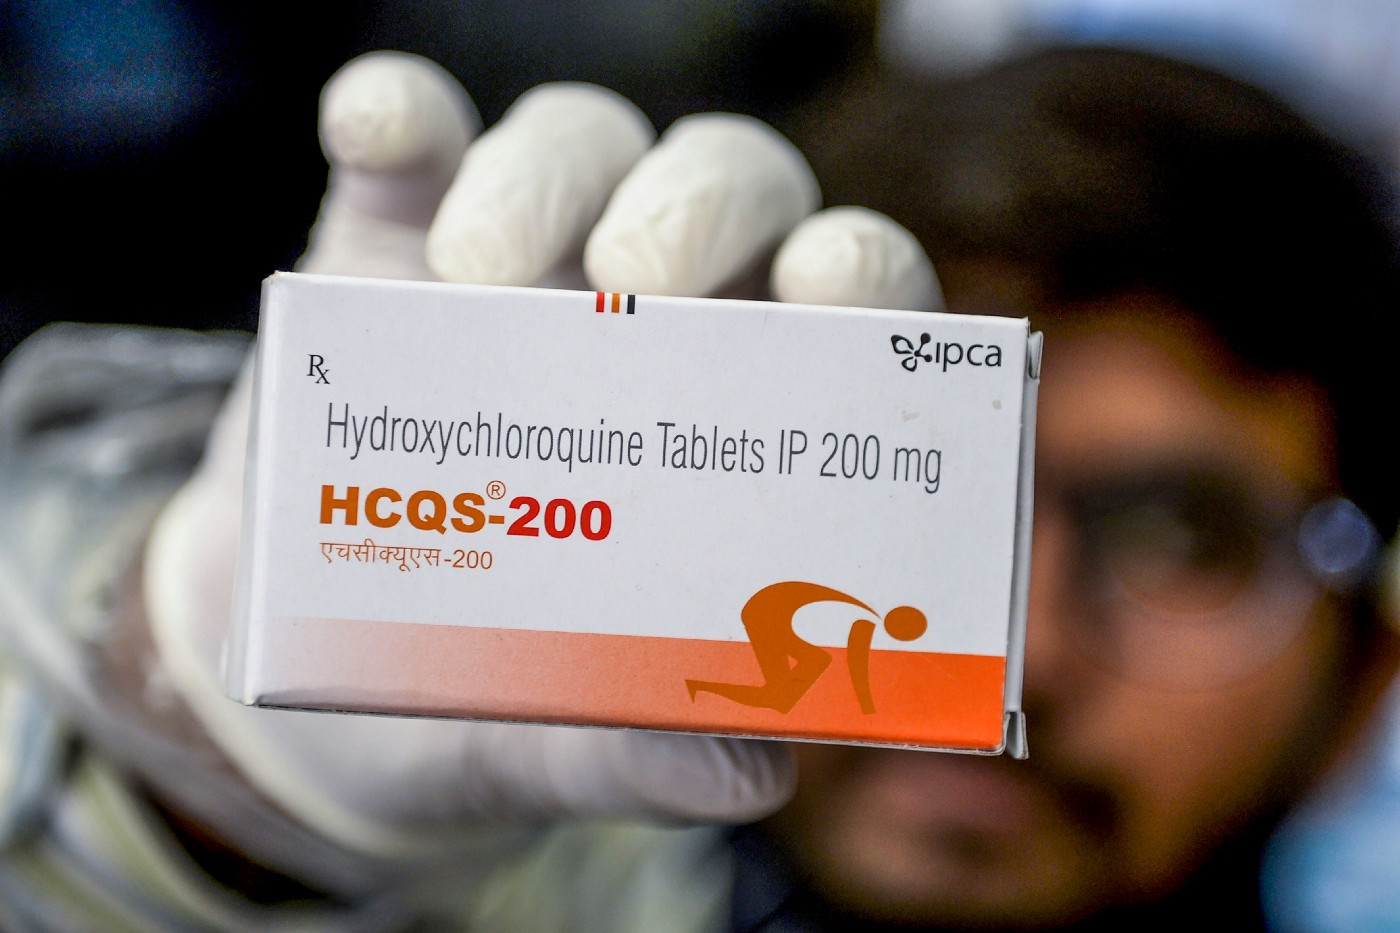 A pharmacist displays a box of hydroxychloroquine tablets.